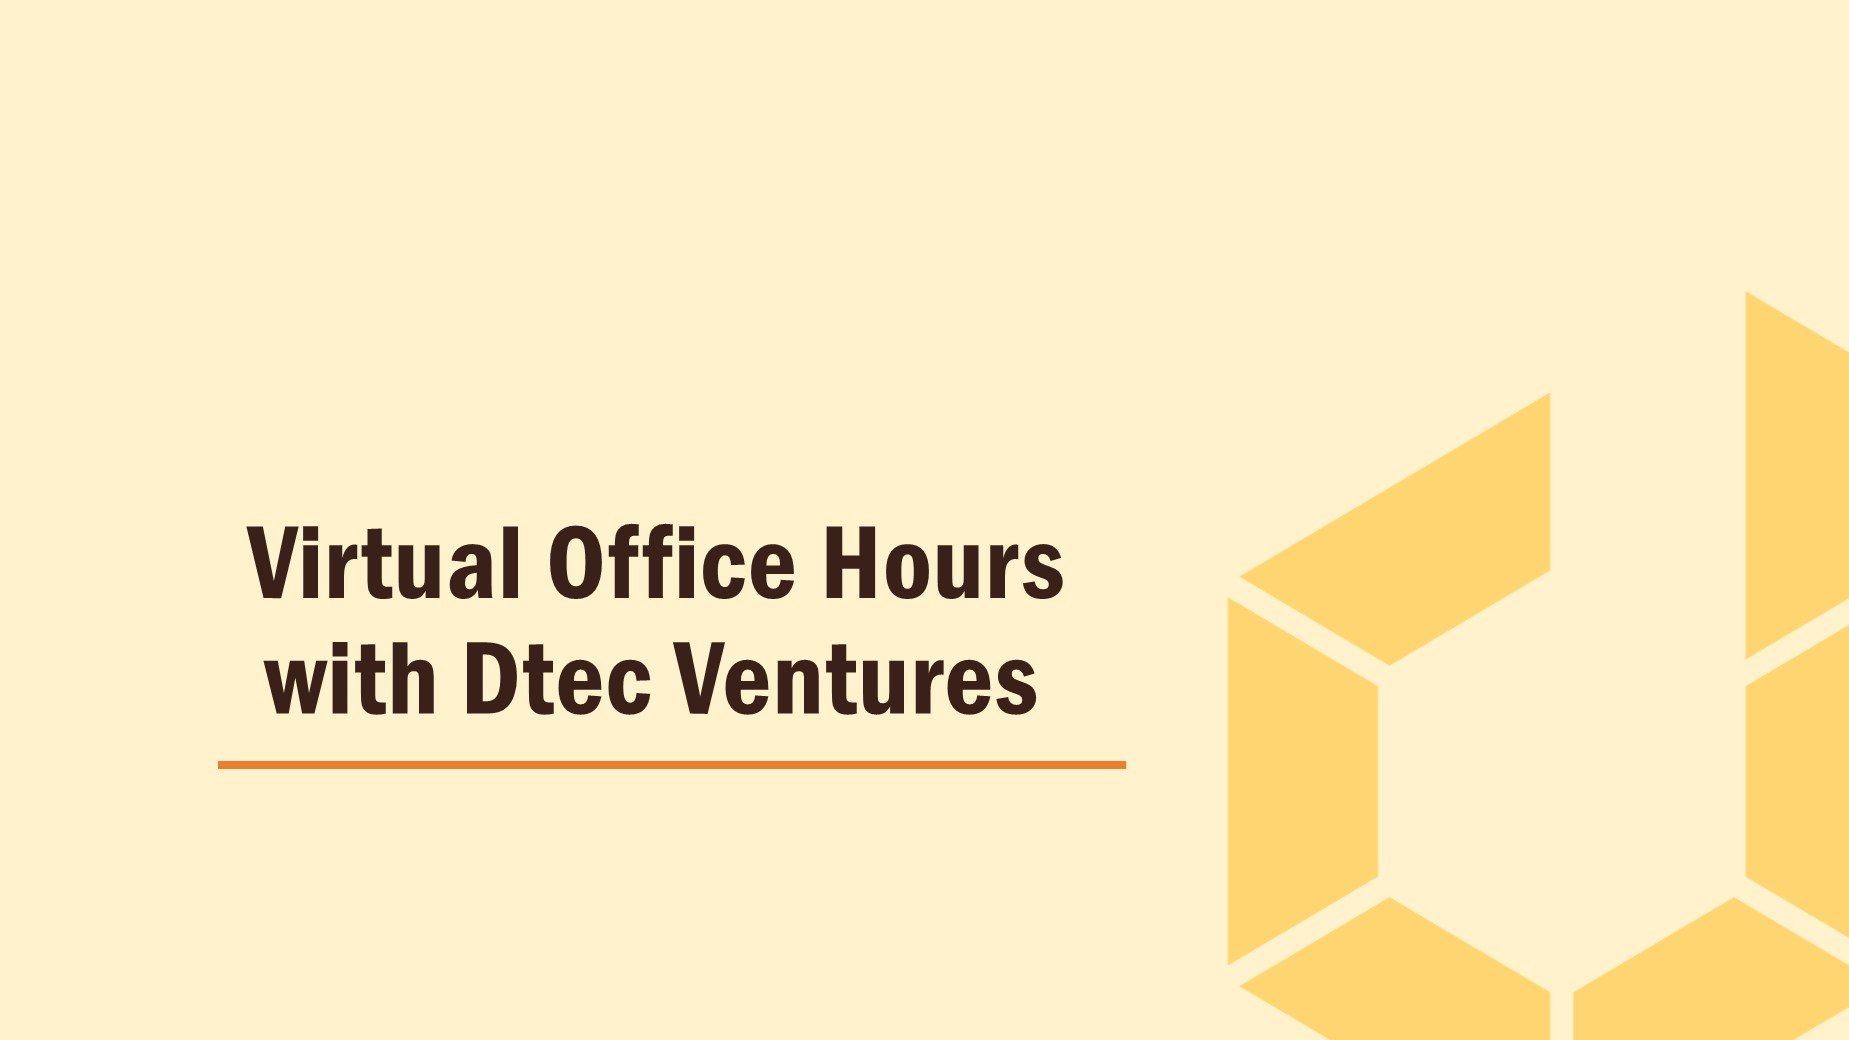 Dtec Ventures office hours